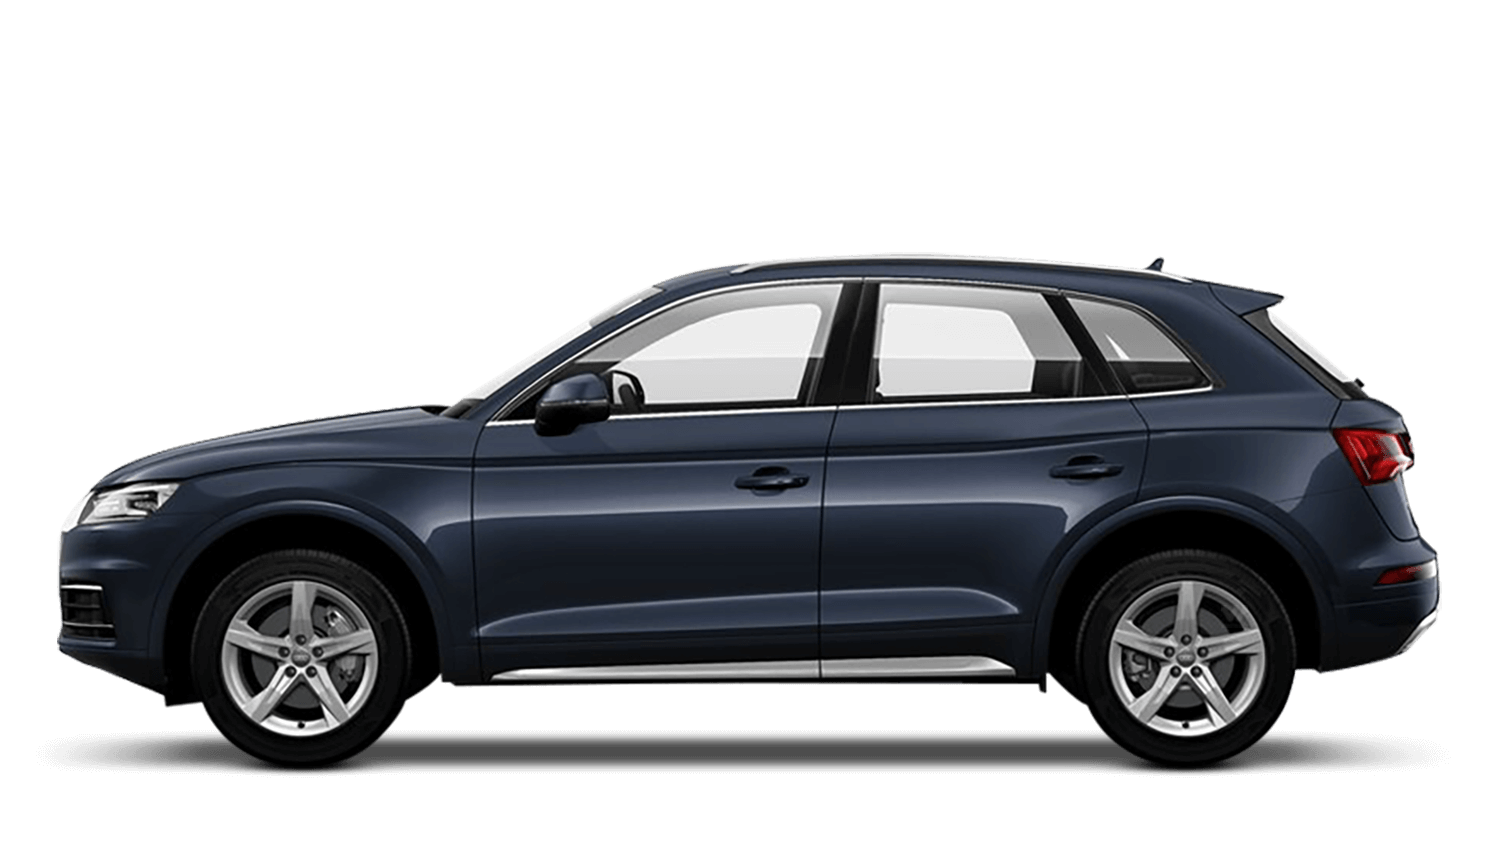 Moonlight Blue (Metallic) Audi Q5